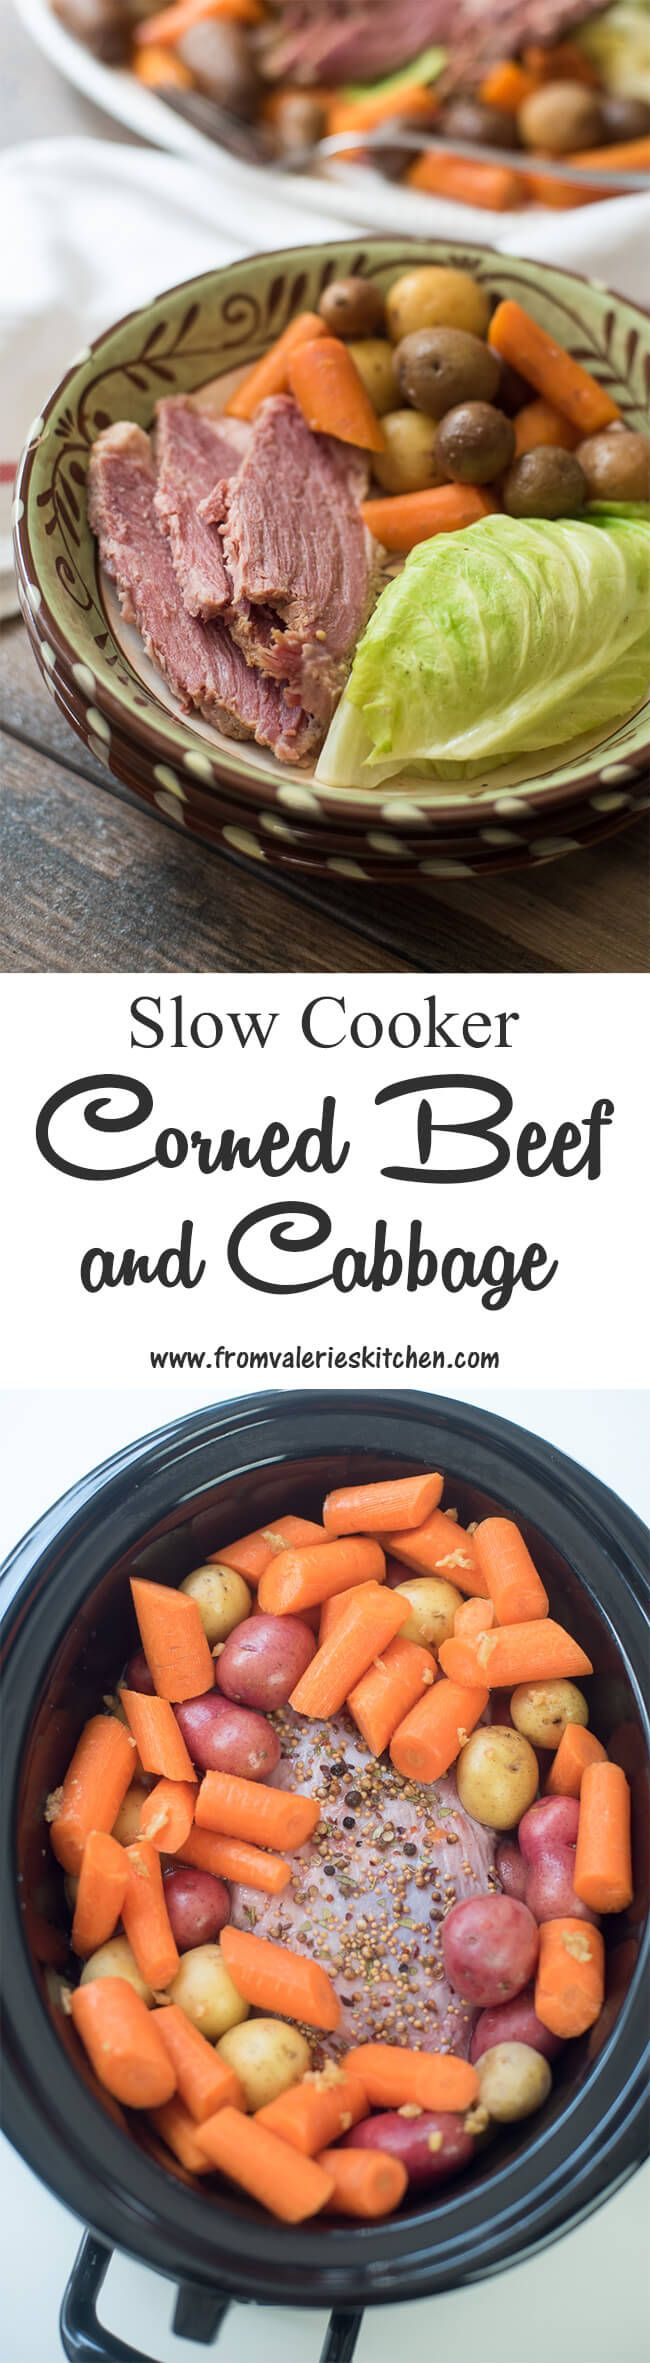 This is THE best method for cooking corned beef if you aren